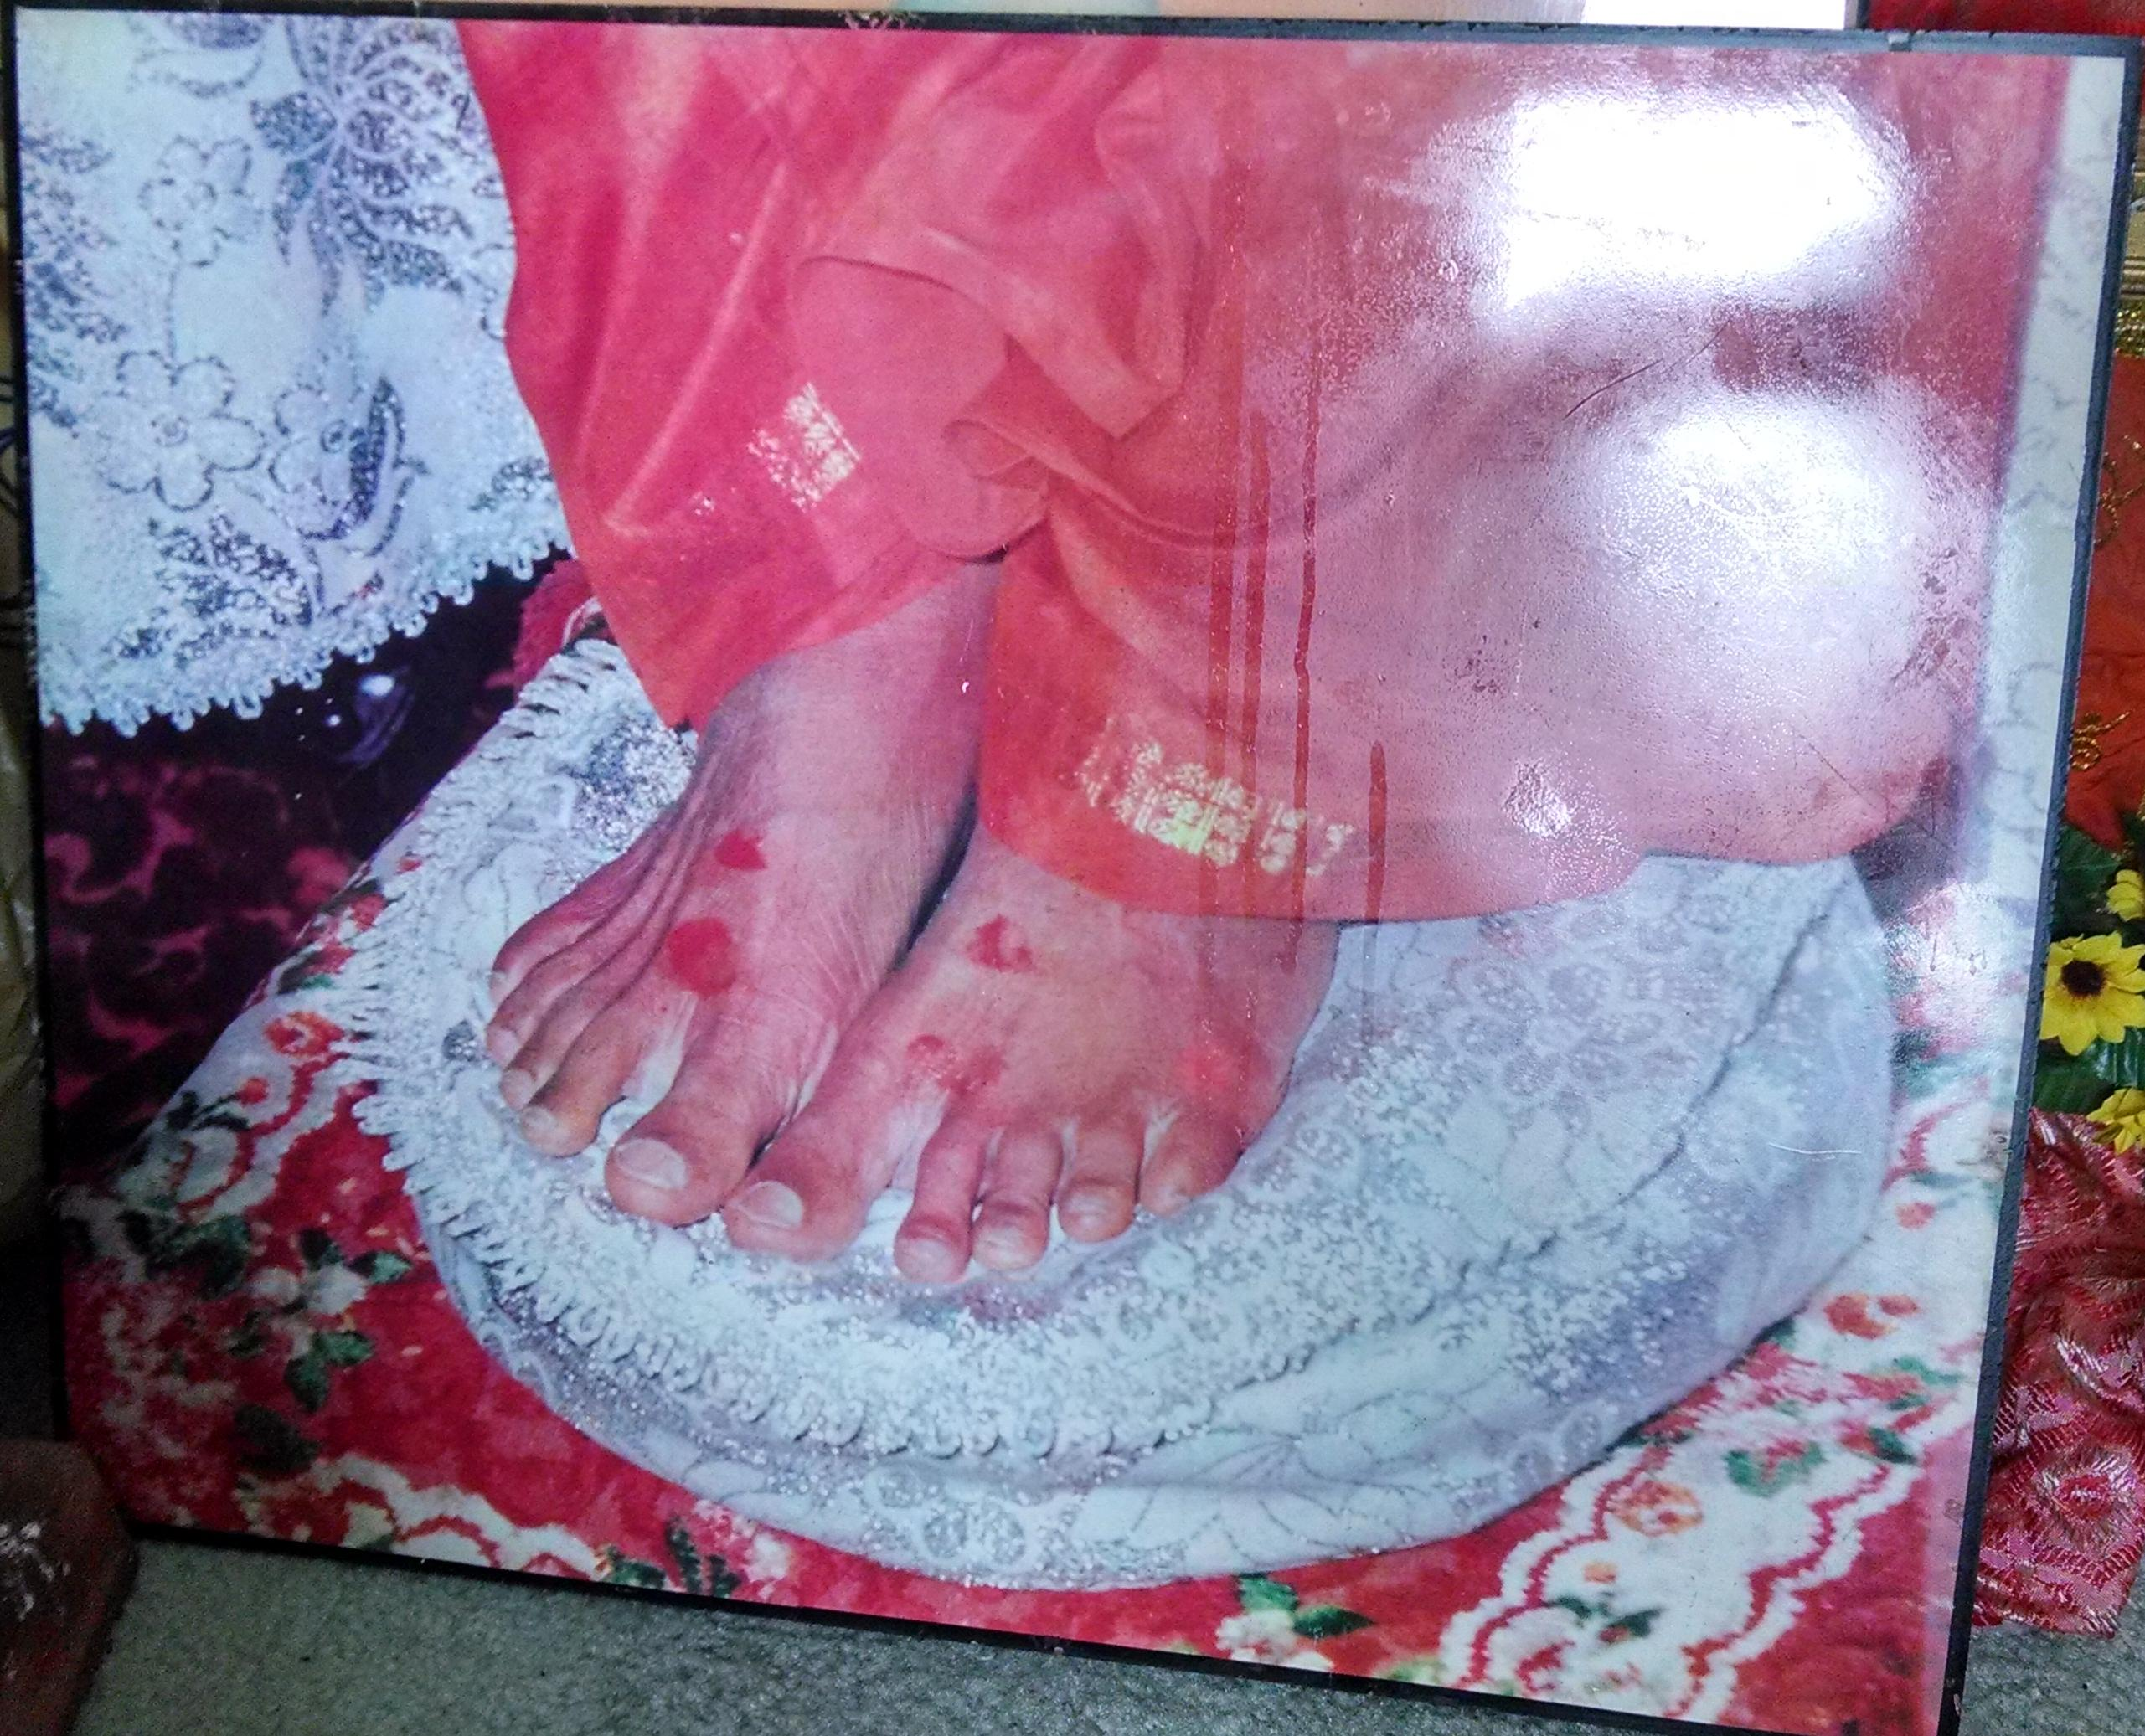 water_baba_feet_3